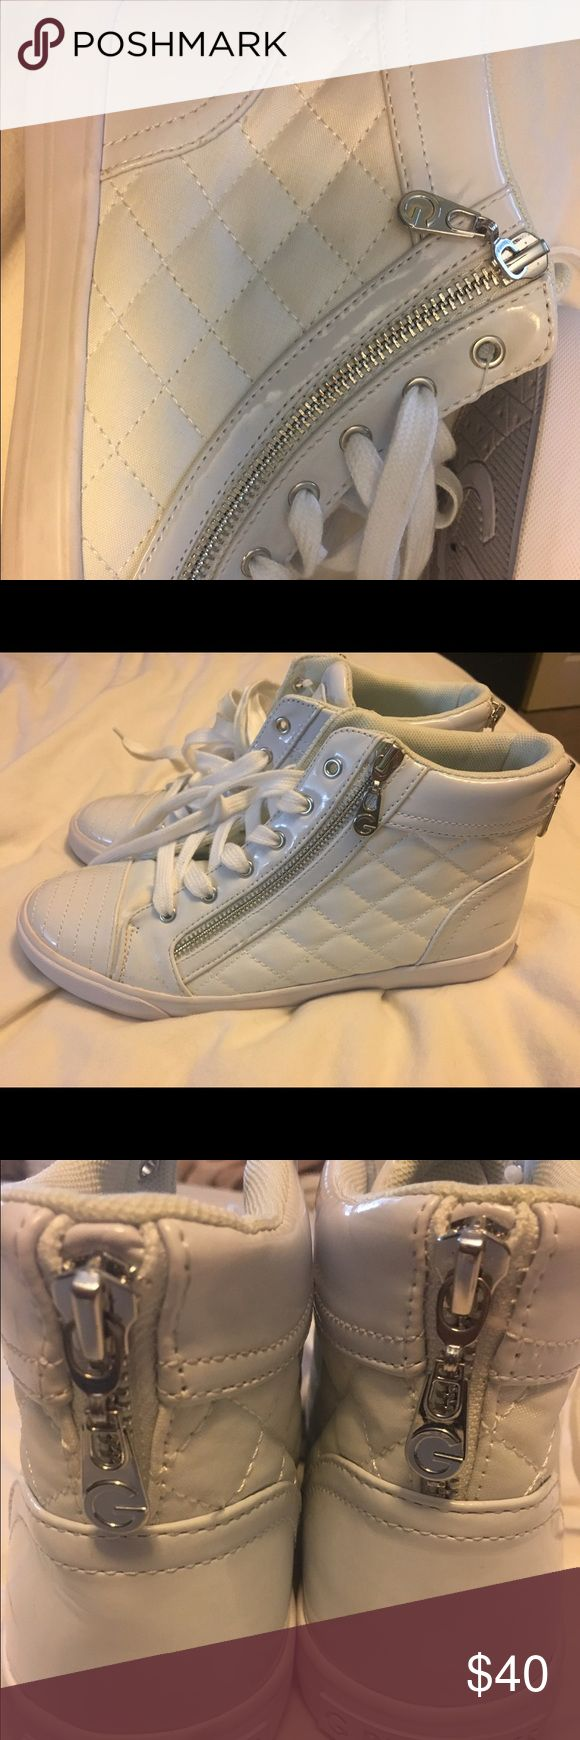 Guess white high top sneakers size 8.5 new White high top guess sneakers. Never been worn. Size 8.5 Guess Shoes Sneakers